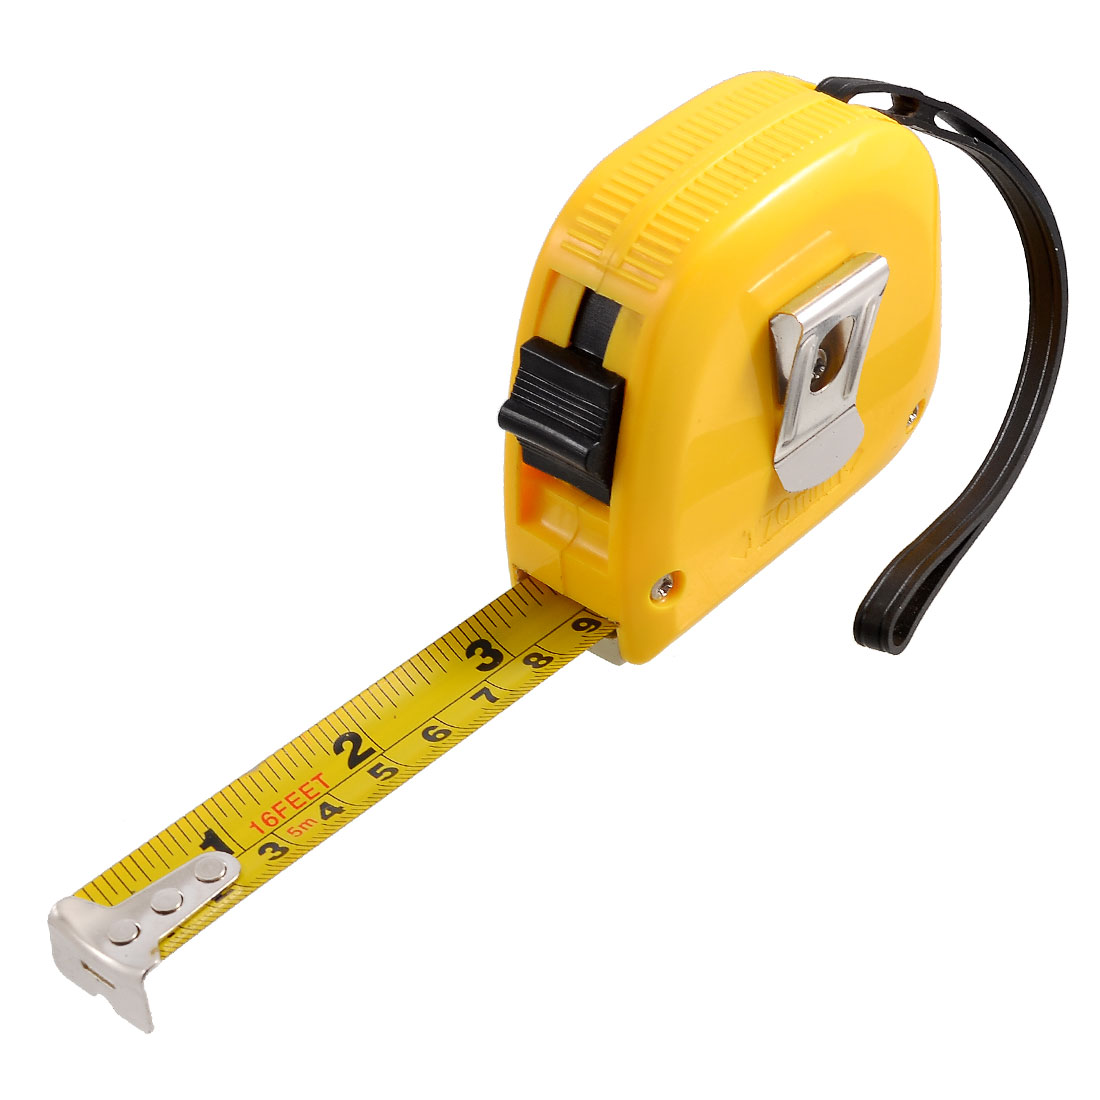 Unique Bargains 16-Foot Retractable Inch/Metric Steel Tape Measure w Hand Strap